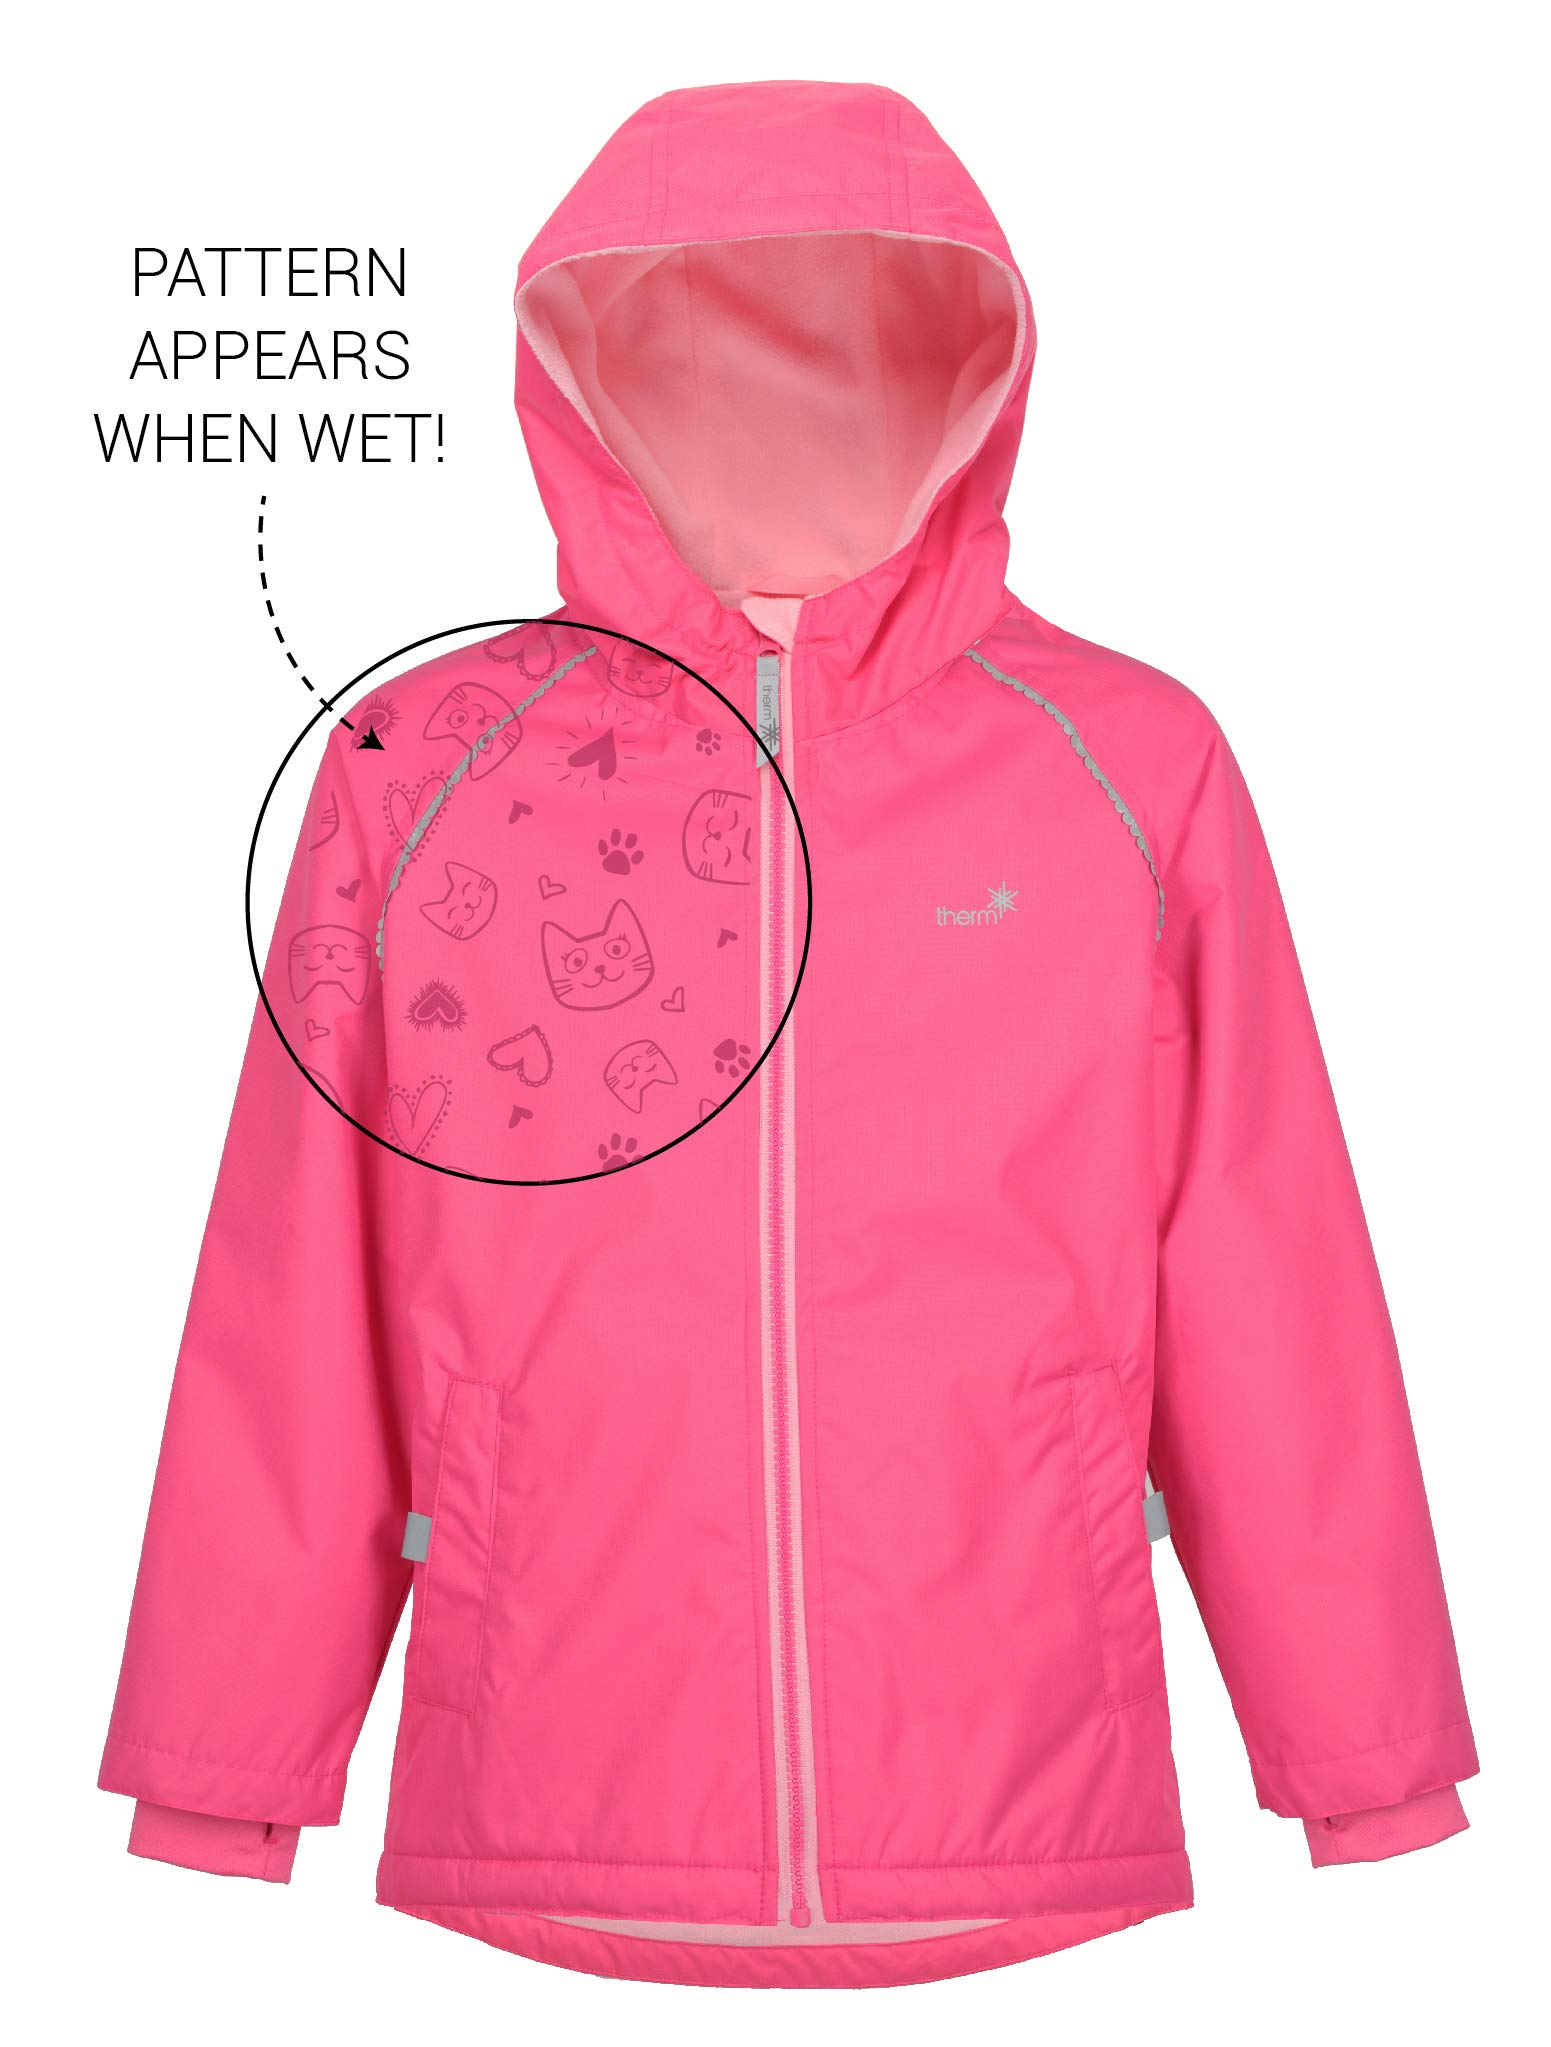 Therm Wind and Waterproof Lightweight Fleece Lined Rain Jacket with Magic Print (8, Paradise Pink)